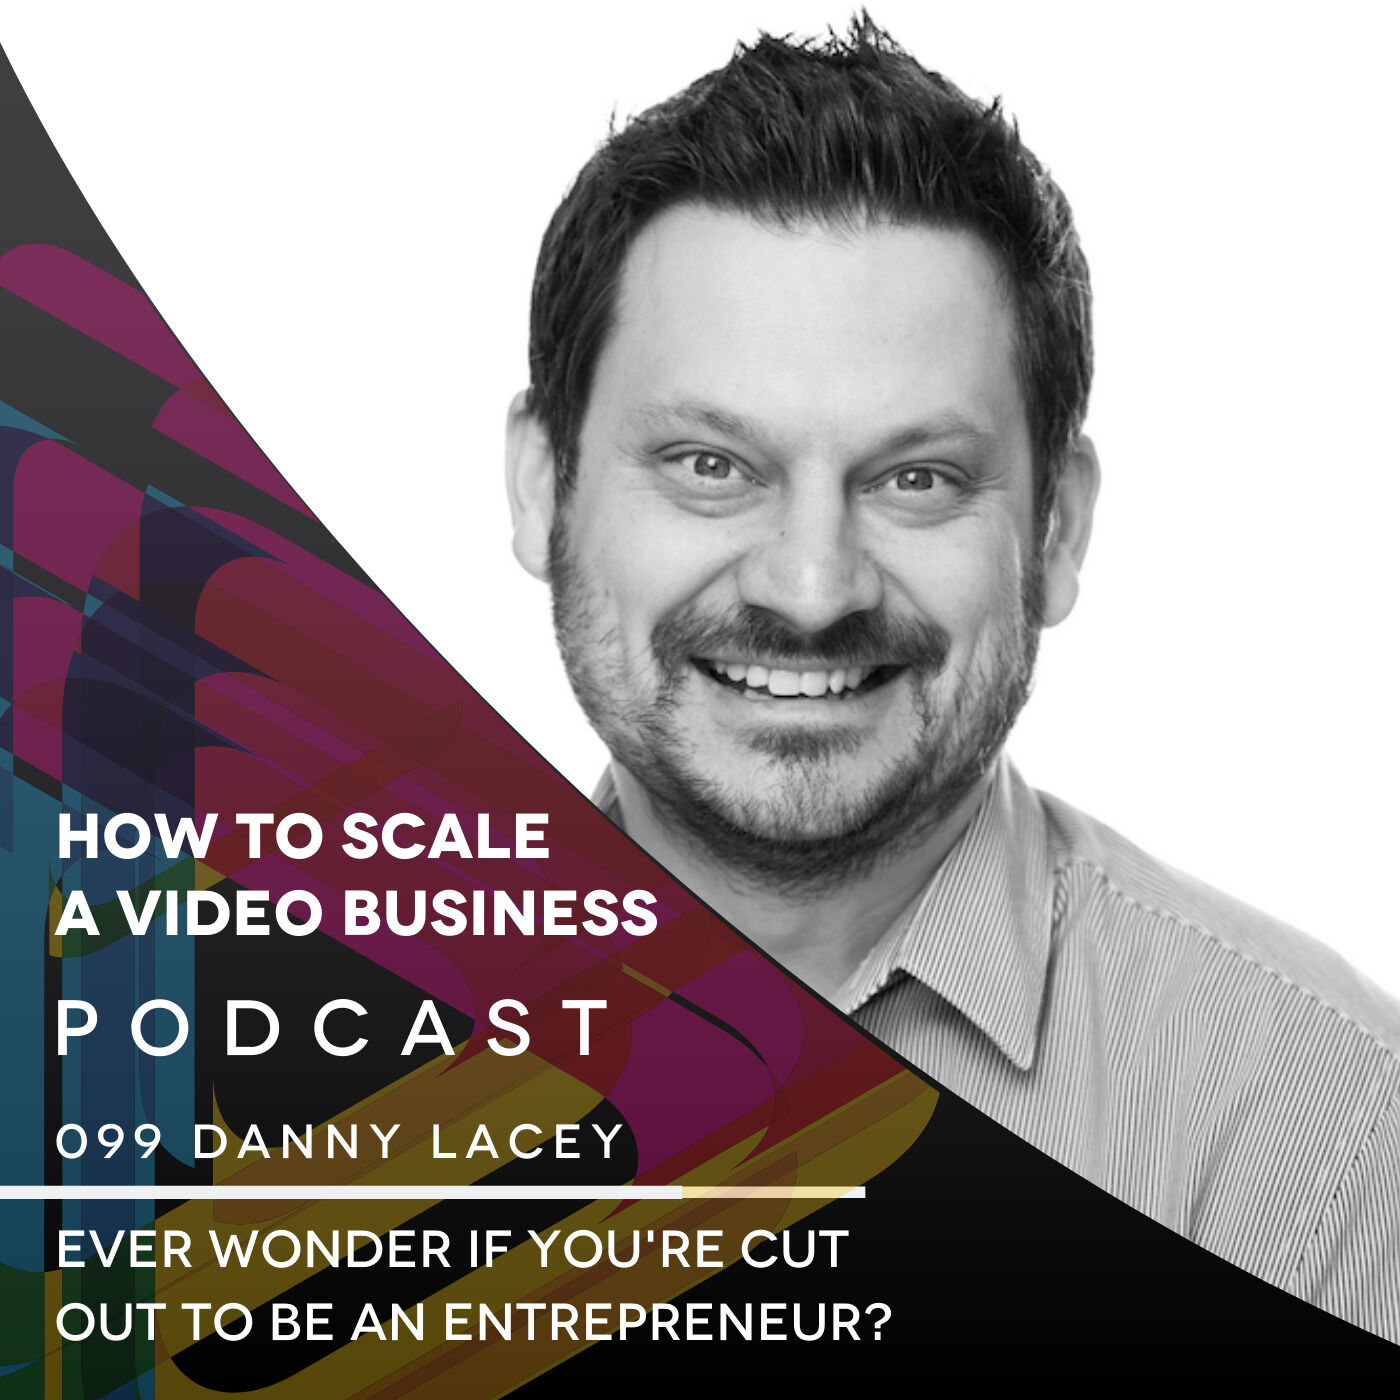 Ever wonder if you're cut out to be an entrepreneur? EP #099 with Danny Lacey